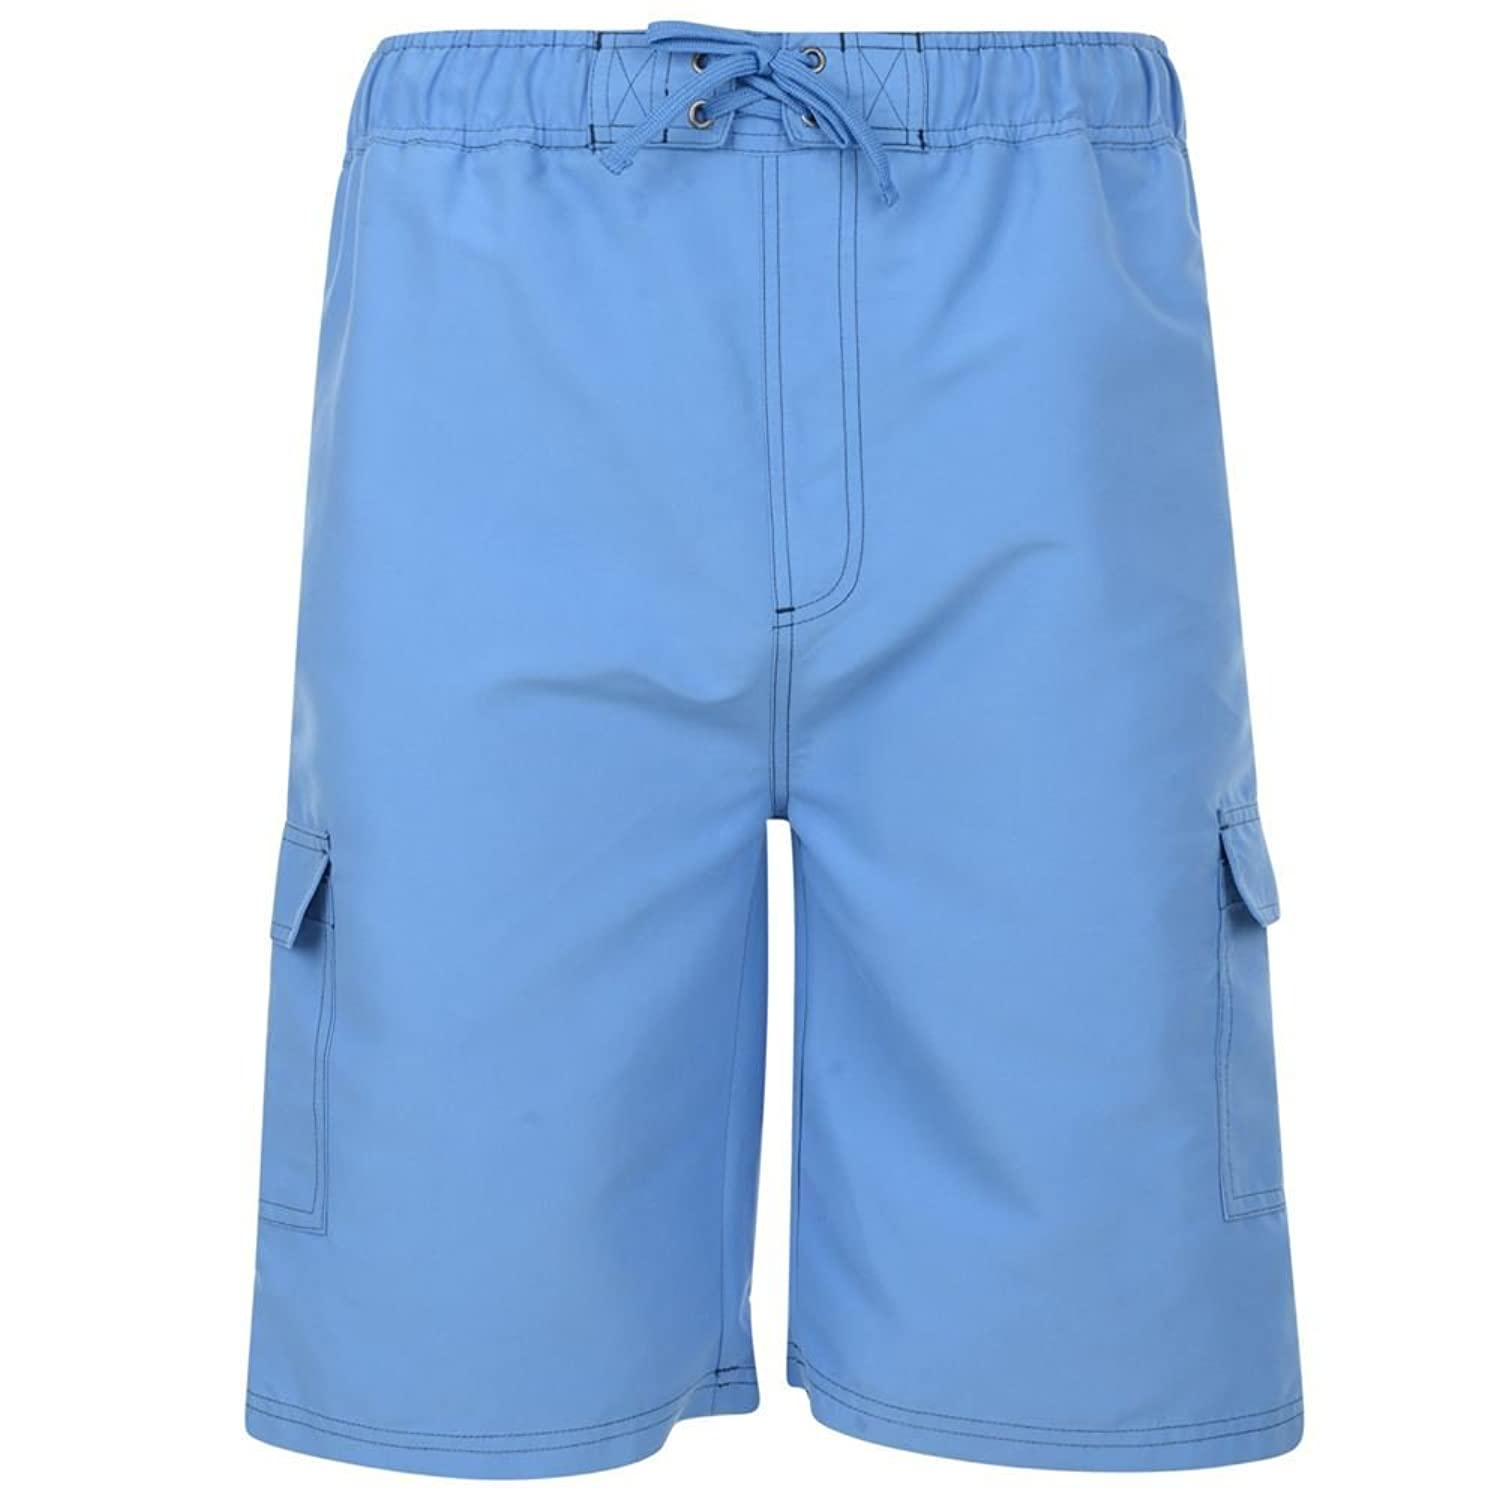 KAM LONG LENGTH CARGO POCKET SWIMMING SHORTS IN SIZE 2XL TO 8XL, 3 COLOR OPTIONS